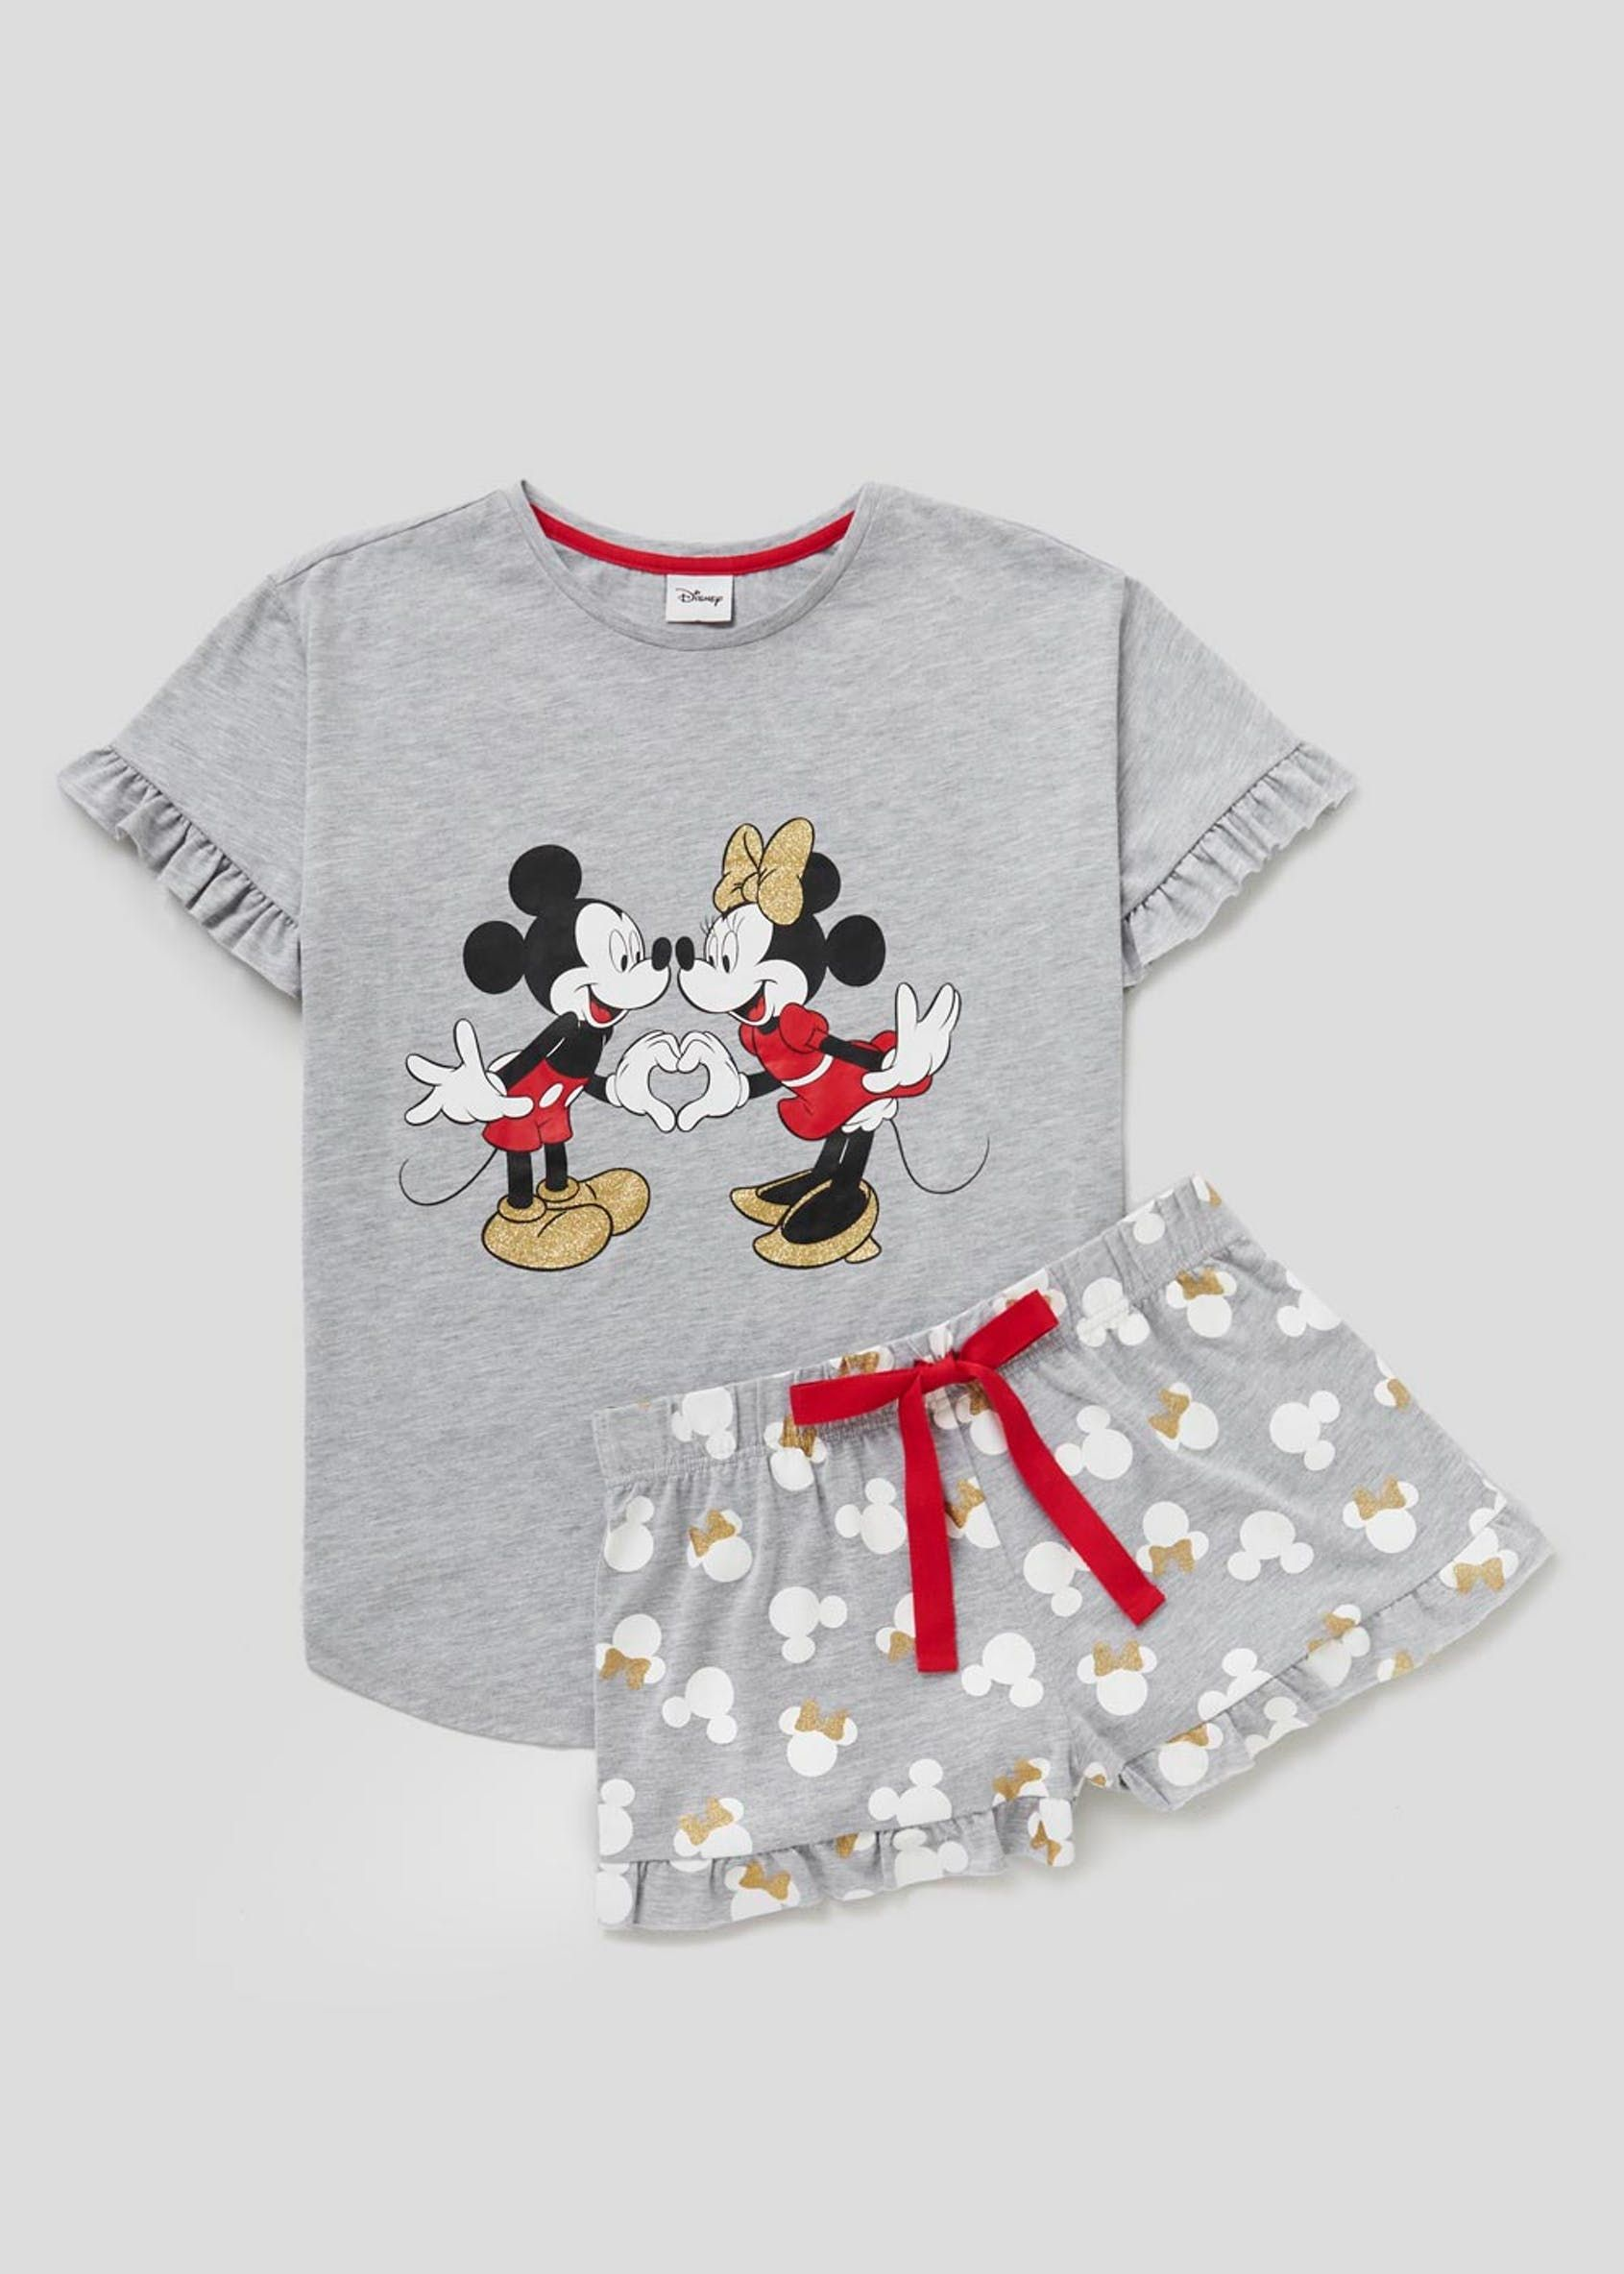 Kids Boys Girls Minnie Mickey Mouse Pajamas Pj/'s Set T-Shirt Top Shorts Outfit